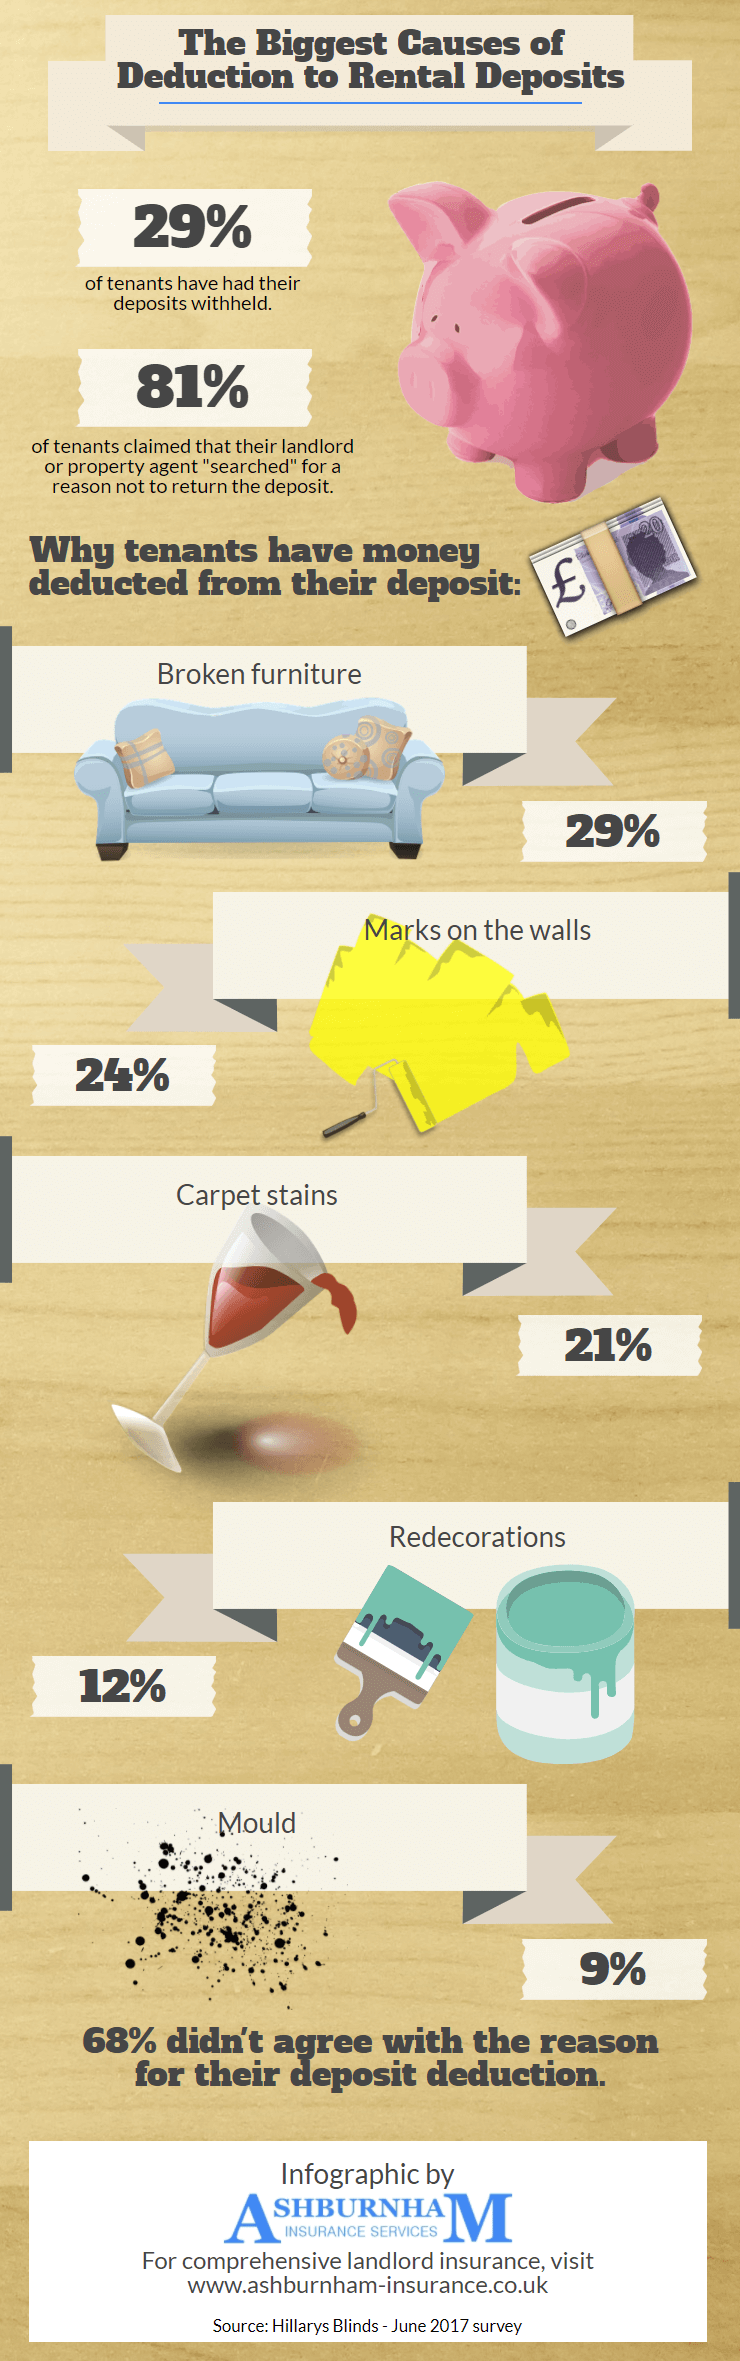 The Biggest Causes of Deduction to Rental Deposits - Infographic